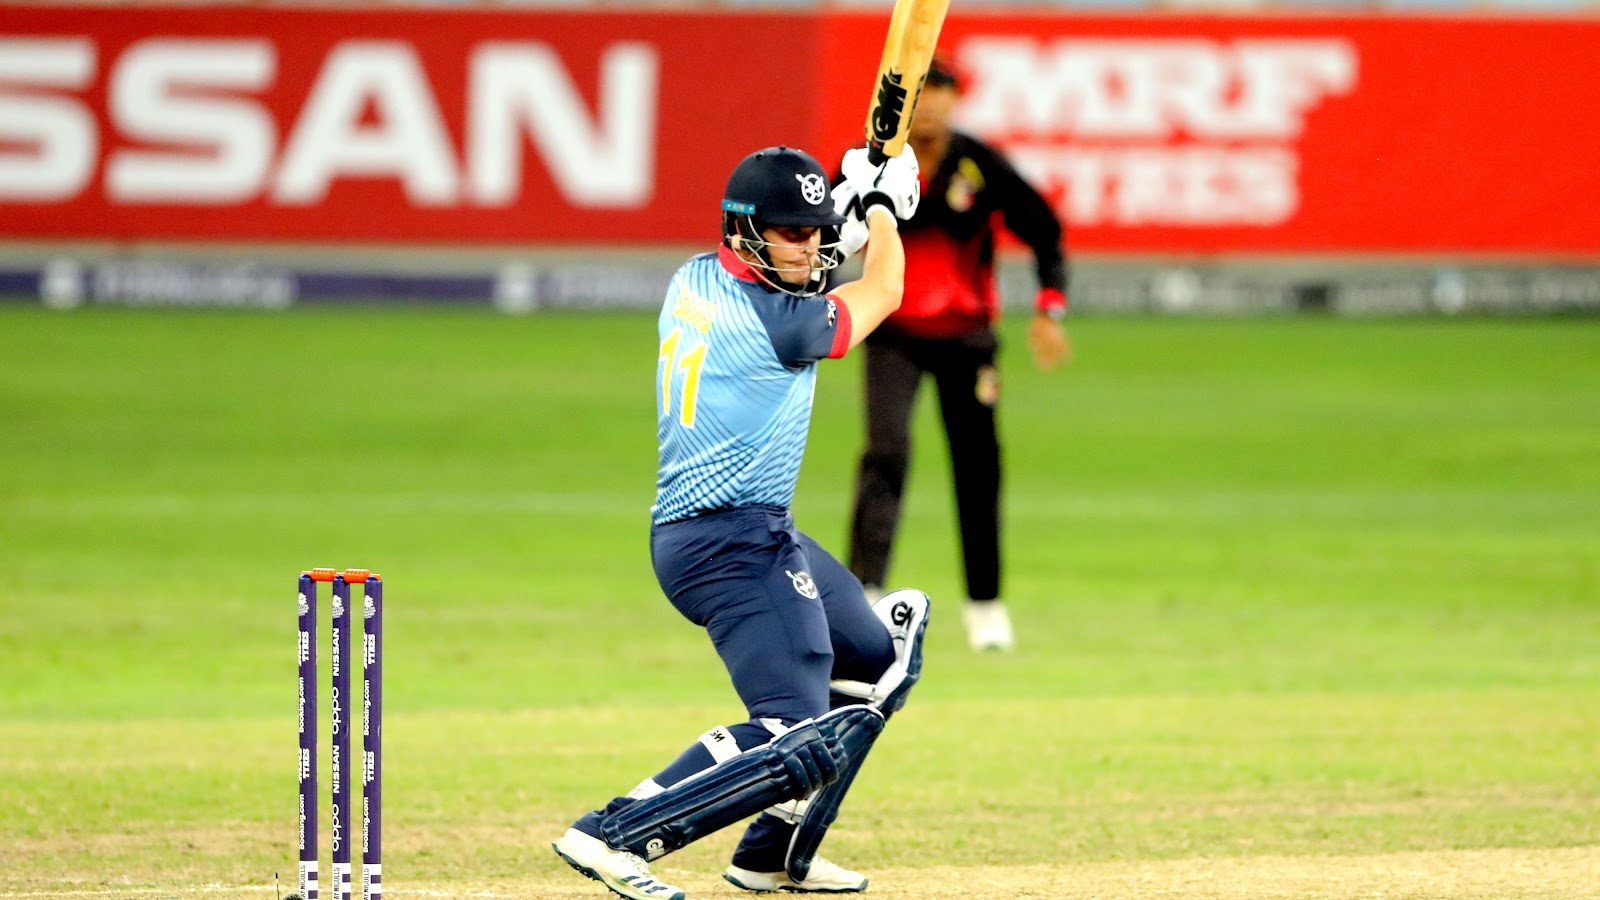 Steven Baard at the T20 World Cup Qualifier